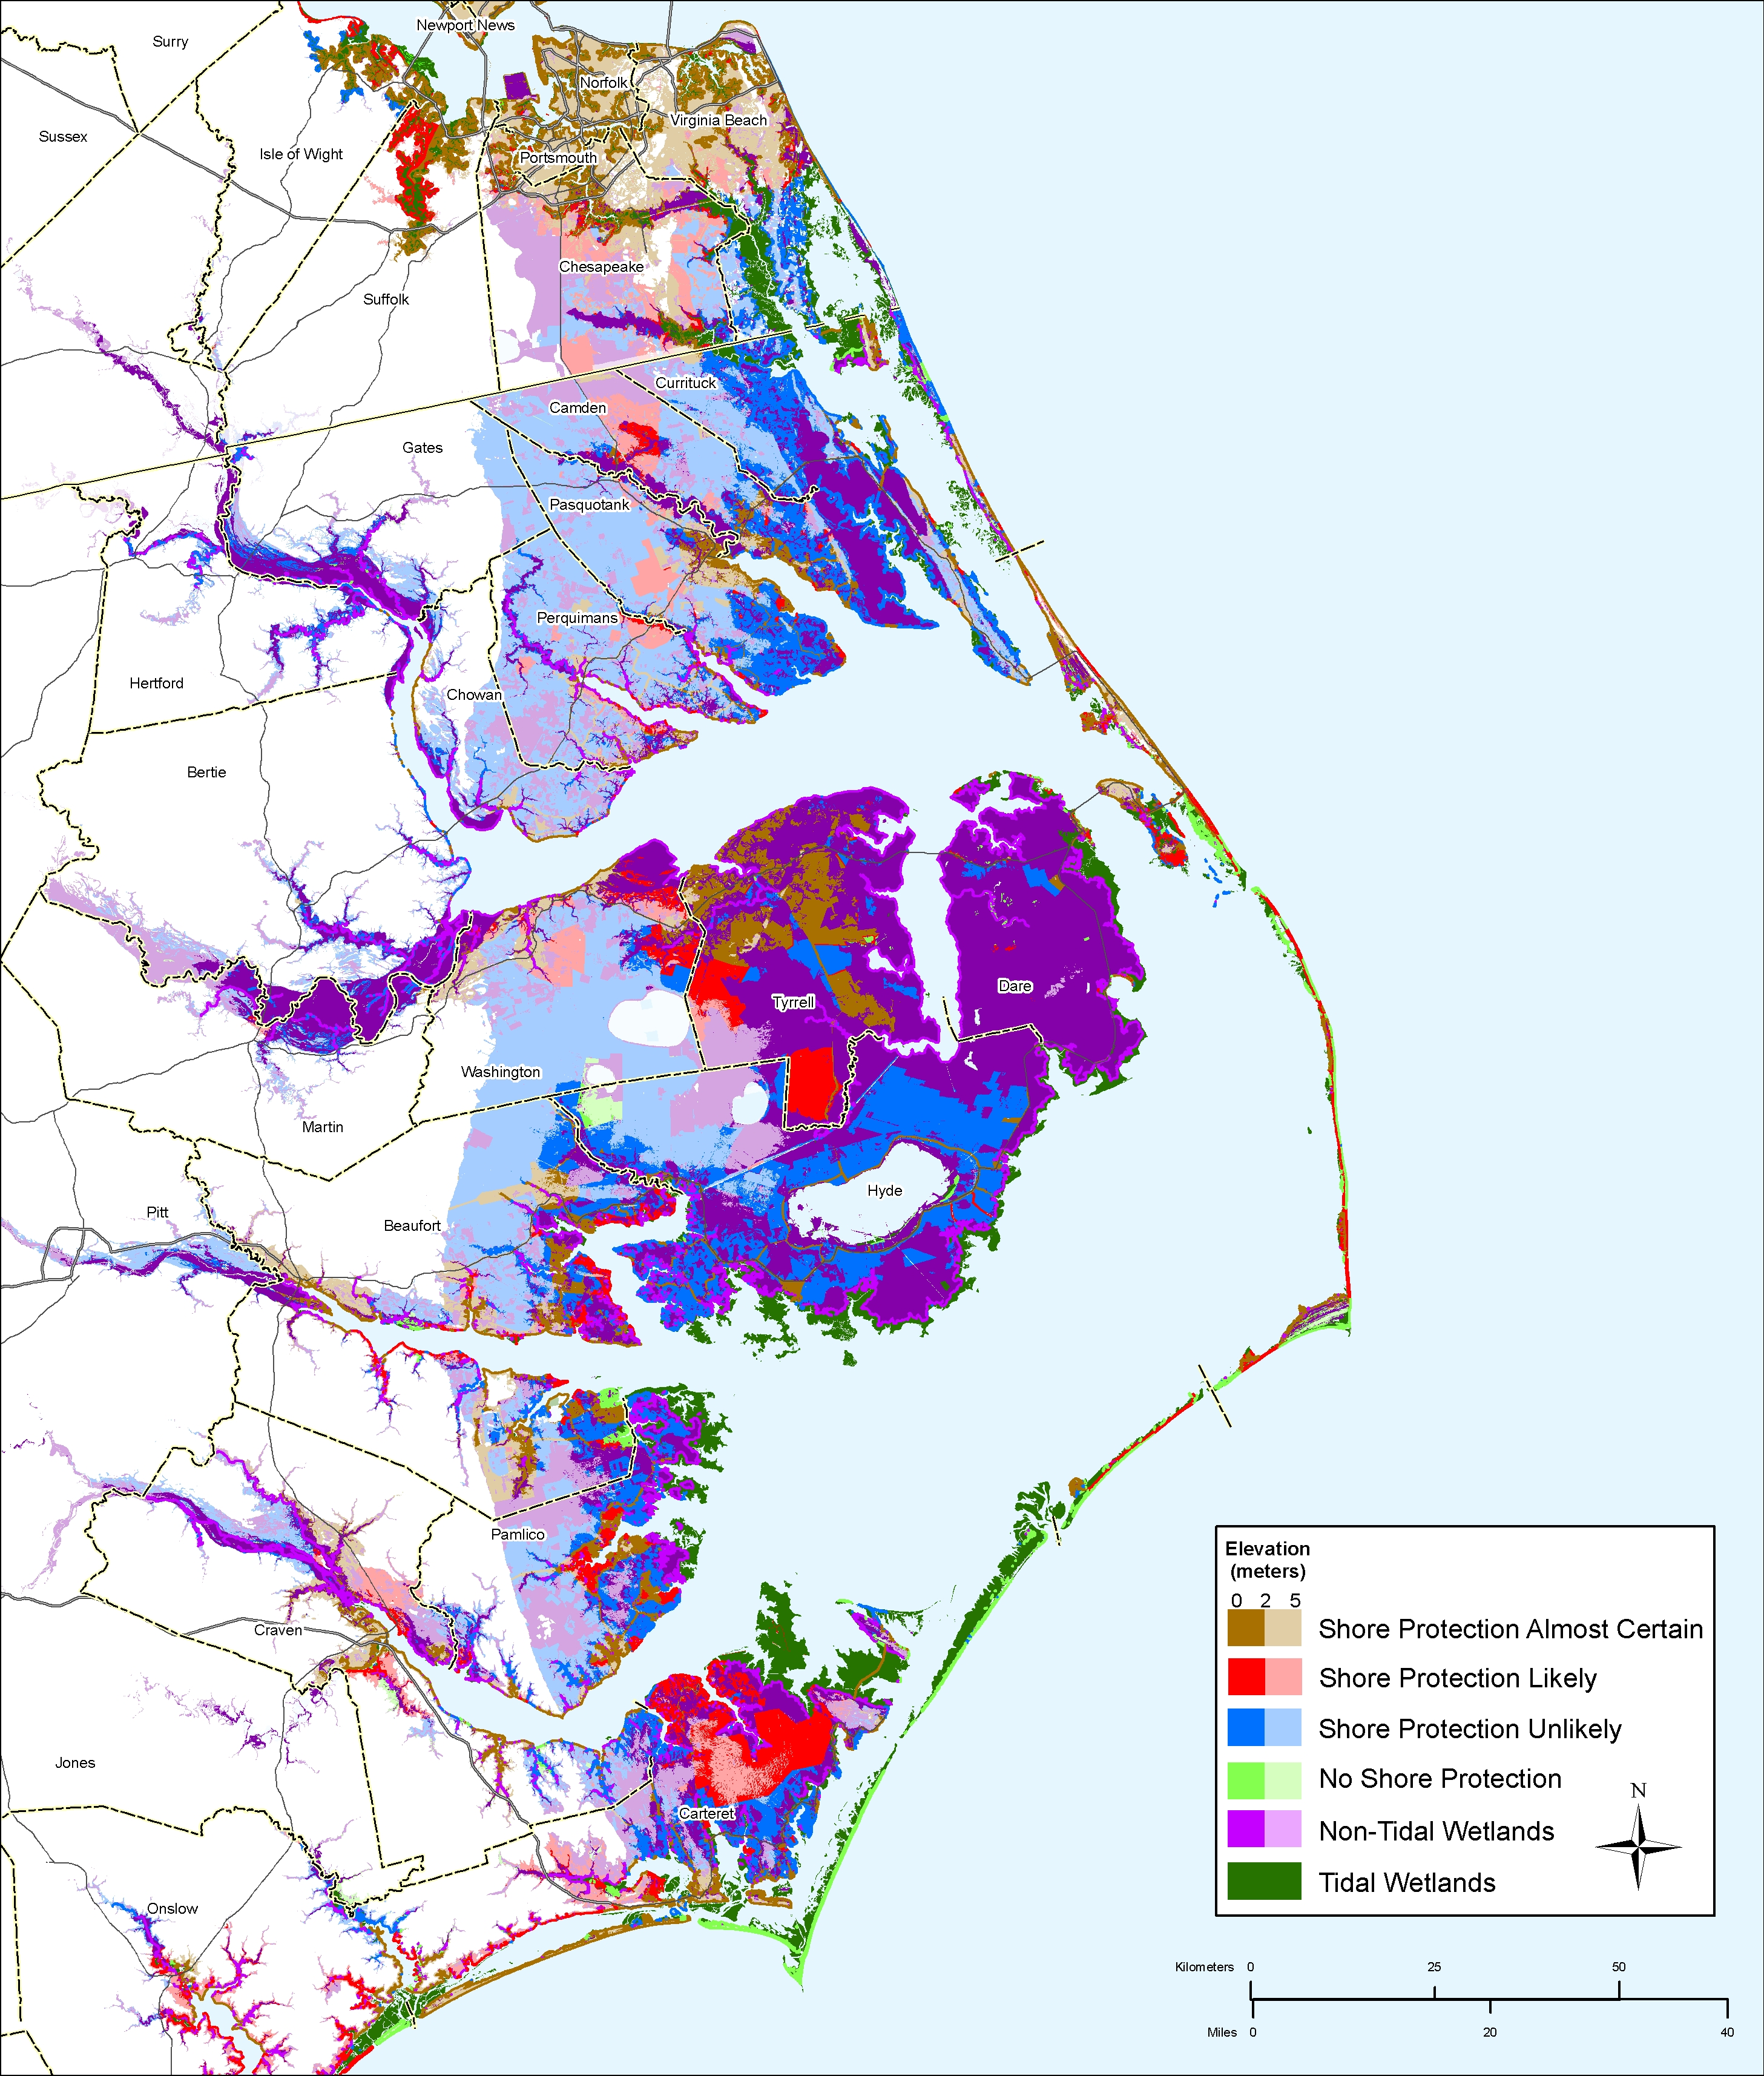 Sea Level Rise Planning Maps Likelihood Of Shore Protection In - Map of northern north carolina